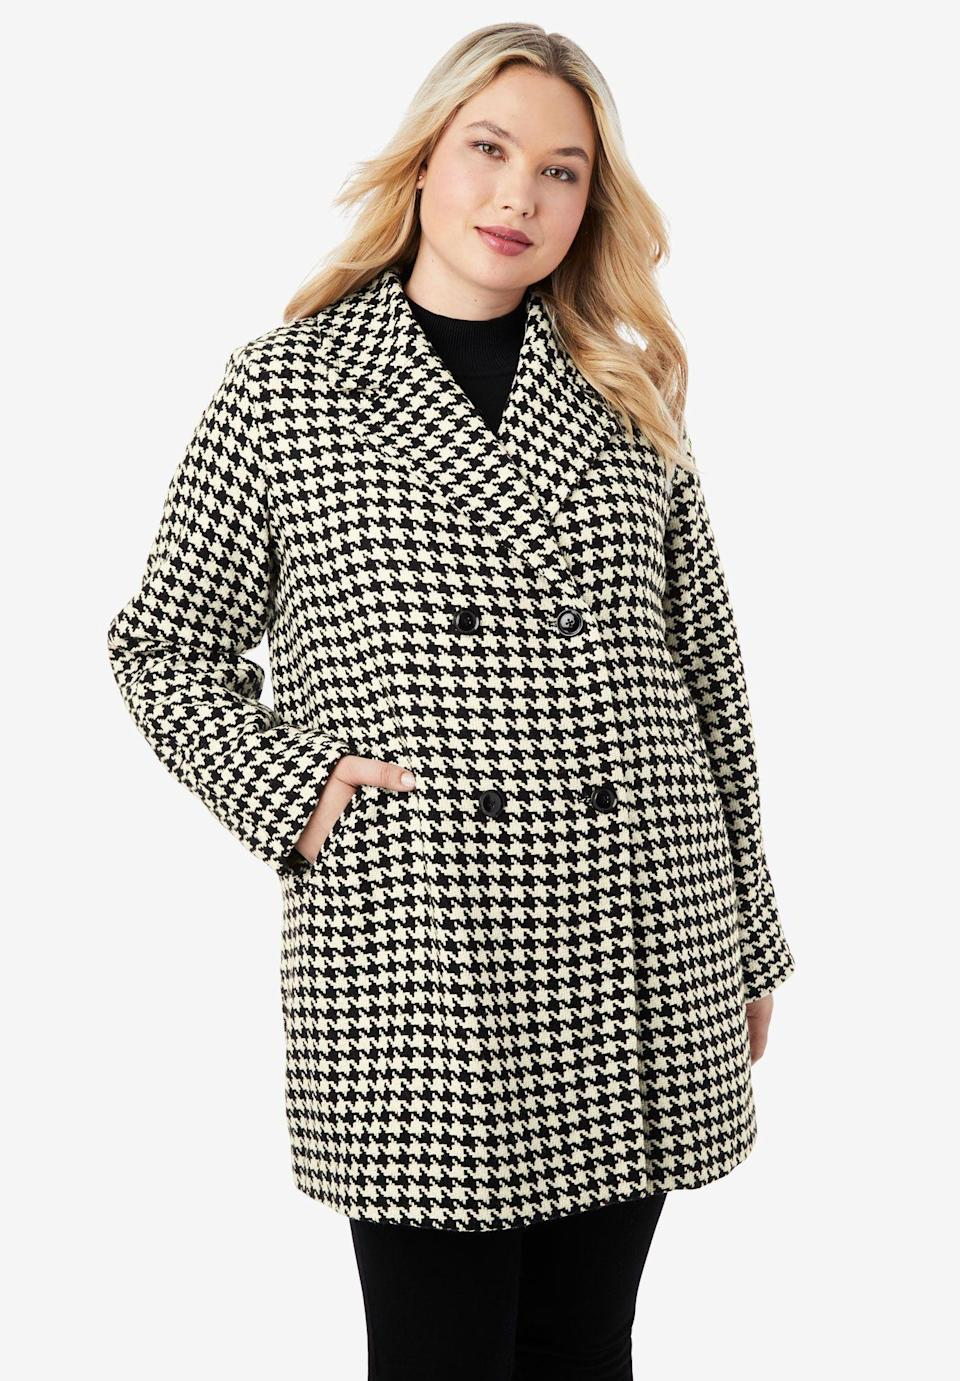 """<p><strong>Jessica London</strong></p><p>fullbeauty.com</p><p><strong>$89.99</strong></p><p><a href=""""https://go.redirectingat.com?id=74968X1596630&url=https%3A%2F%2Fwww.fullbeauty.com%2Fproducts%2Fa-line-peacoat%2F1022911.html%3FcartCookie%3Dfalse%26isRedirect%3Dtrue%23close&sref=https%3A%2F%2Fwww.oprahmag.com%2Fstyle%2Fg33266496%2Fplus-size-coats%2F"""" rel=""""nofollow noopener"""" target=""""_blank"""" data-ylk=""""slk:SHOP NOW"""" class=""""link rapid-noclick-resp"""">SHOP NOW</a></p><p>Are you mad for plaid? Then you'll love this sophisticated peacoat, which feels a bit retro thanks to a graphic ivory and black houndstooth pattern. </p>"""